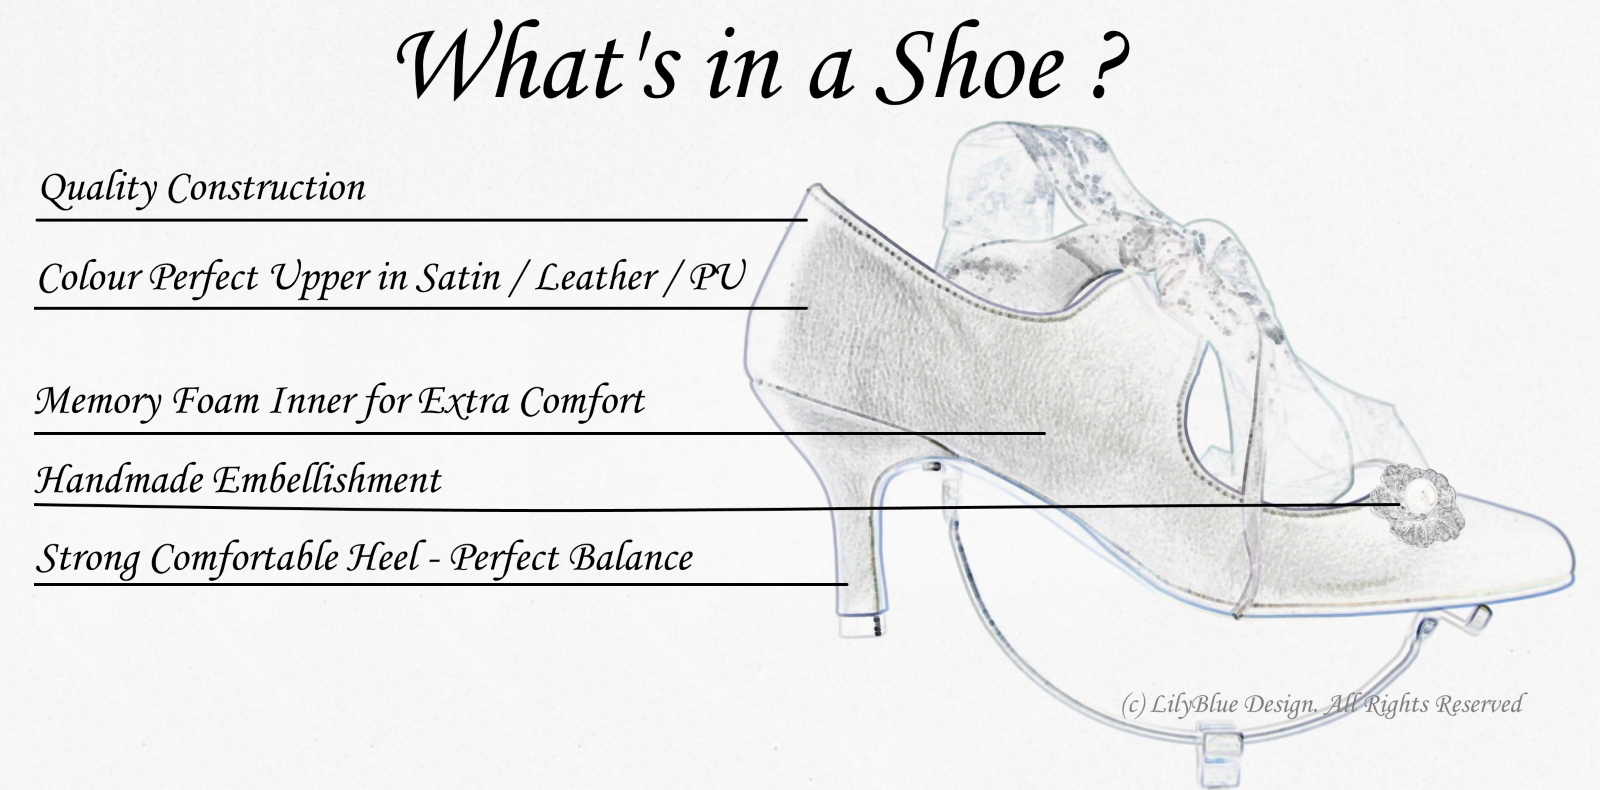 What is in a Shoe. Quality Construction, Colour Perfect, Comfortable, Sturdy Heel with perfect Balance. Handmade Decorations making it - the Perfect Wedding Shoe!